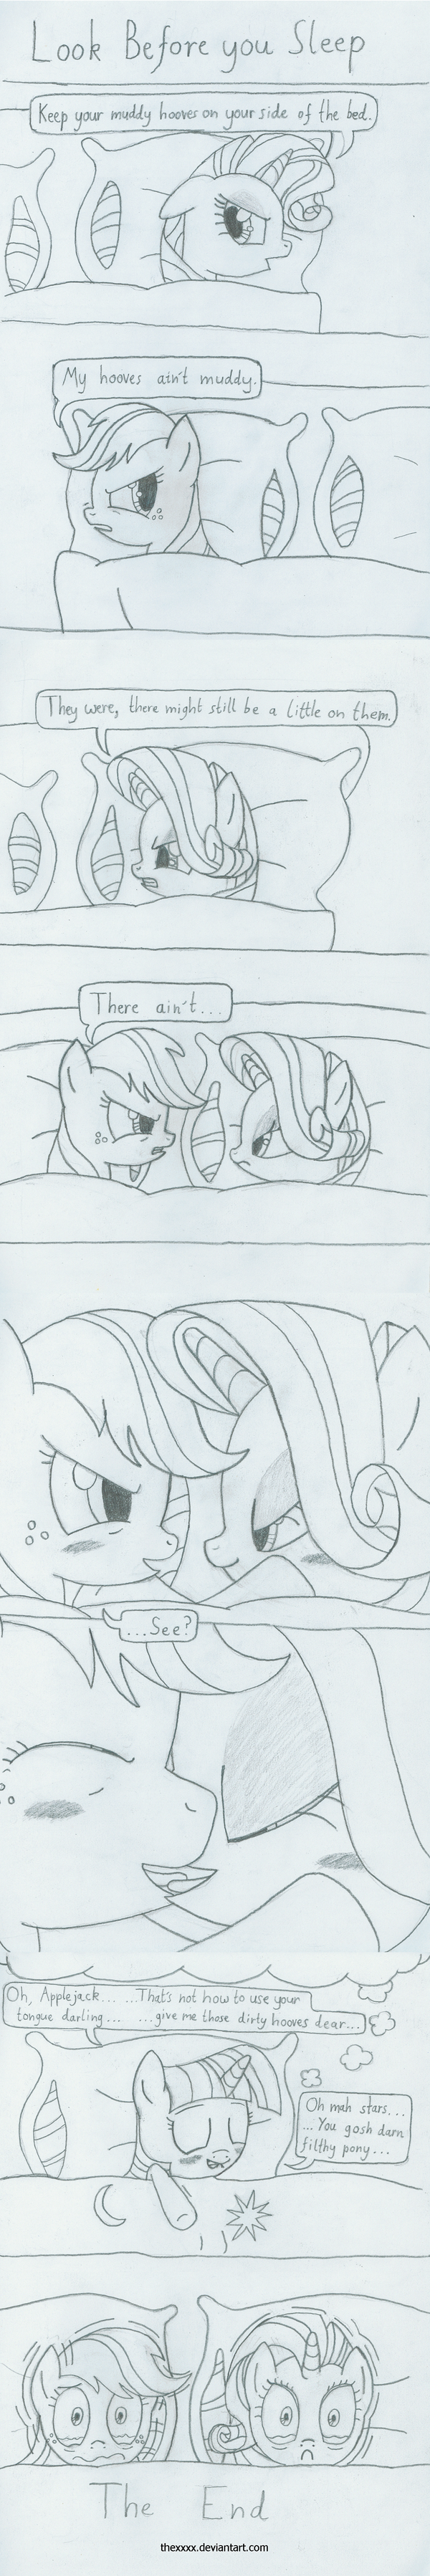 applejack_(mlp) bed black_and_white blanket blush comic crying dream equine female friendship_is_magic horns horse monochrome my_little_pony pillow pony rarity_(mlp) text the_xxx twilight_sparkle_(mlp) unicorn yuri